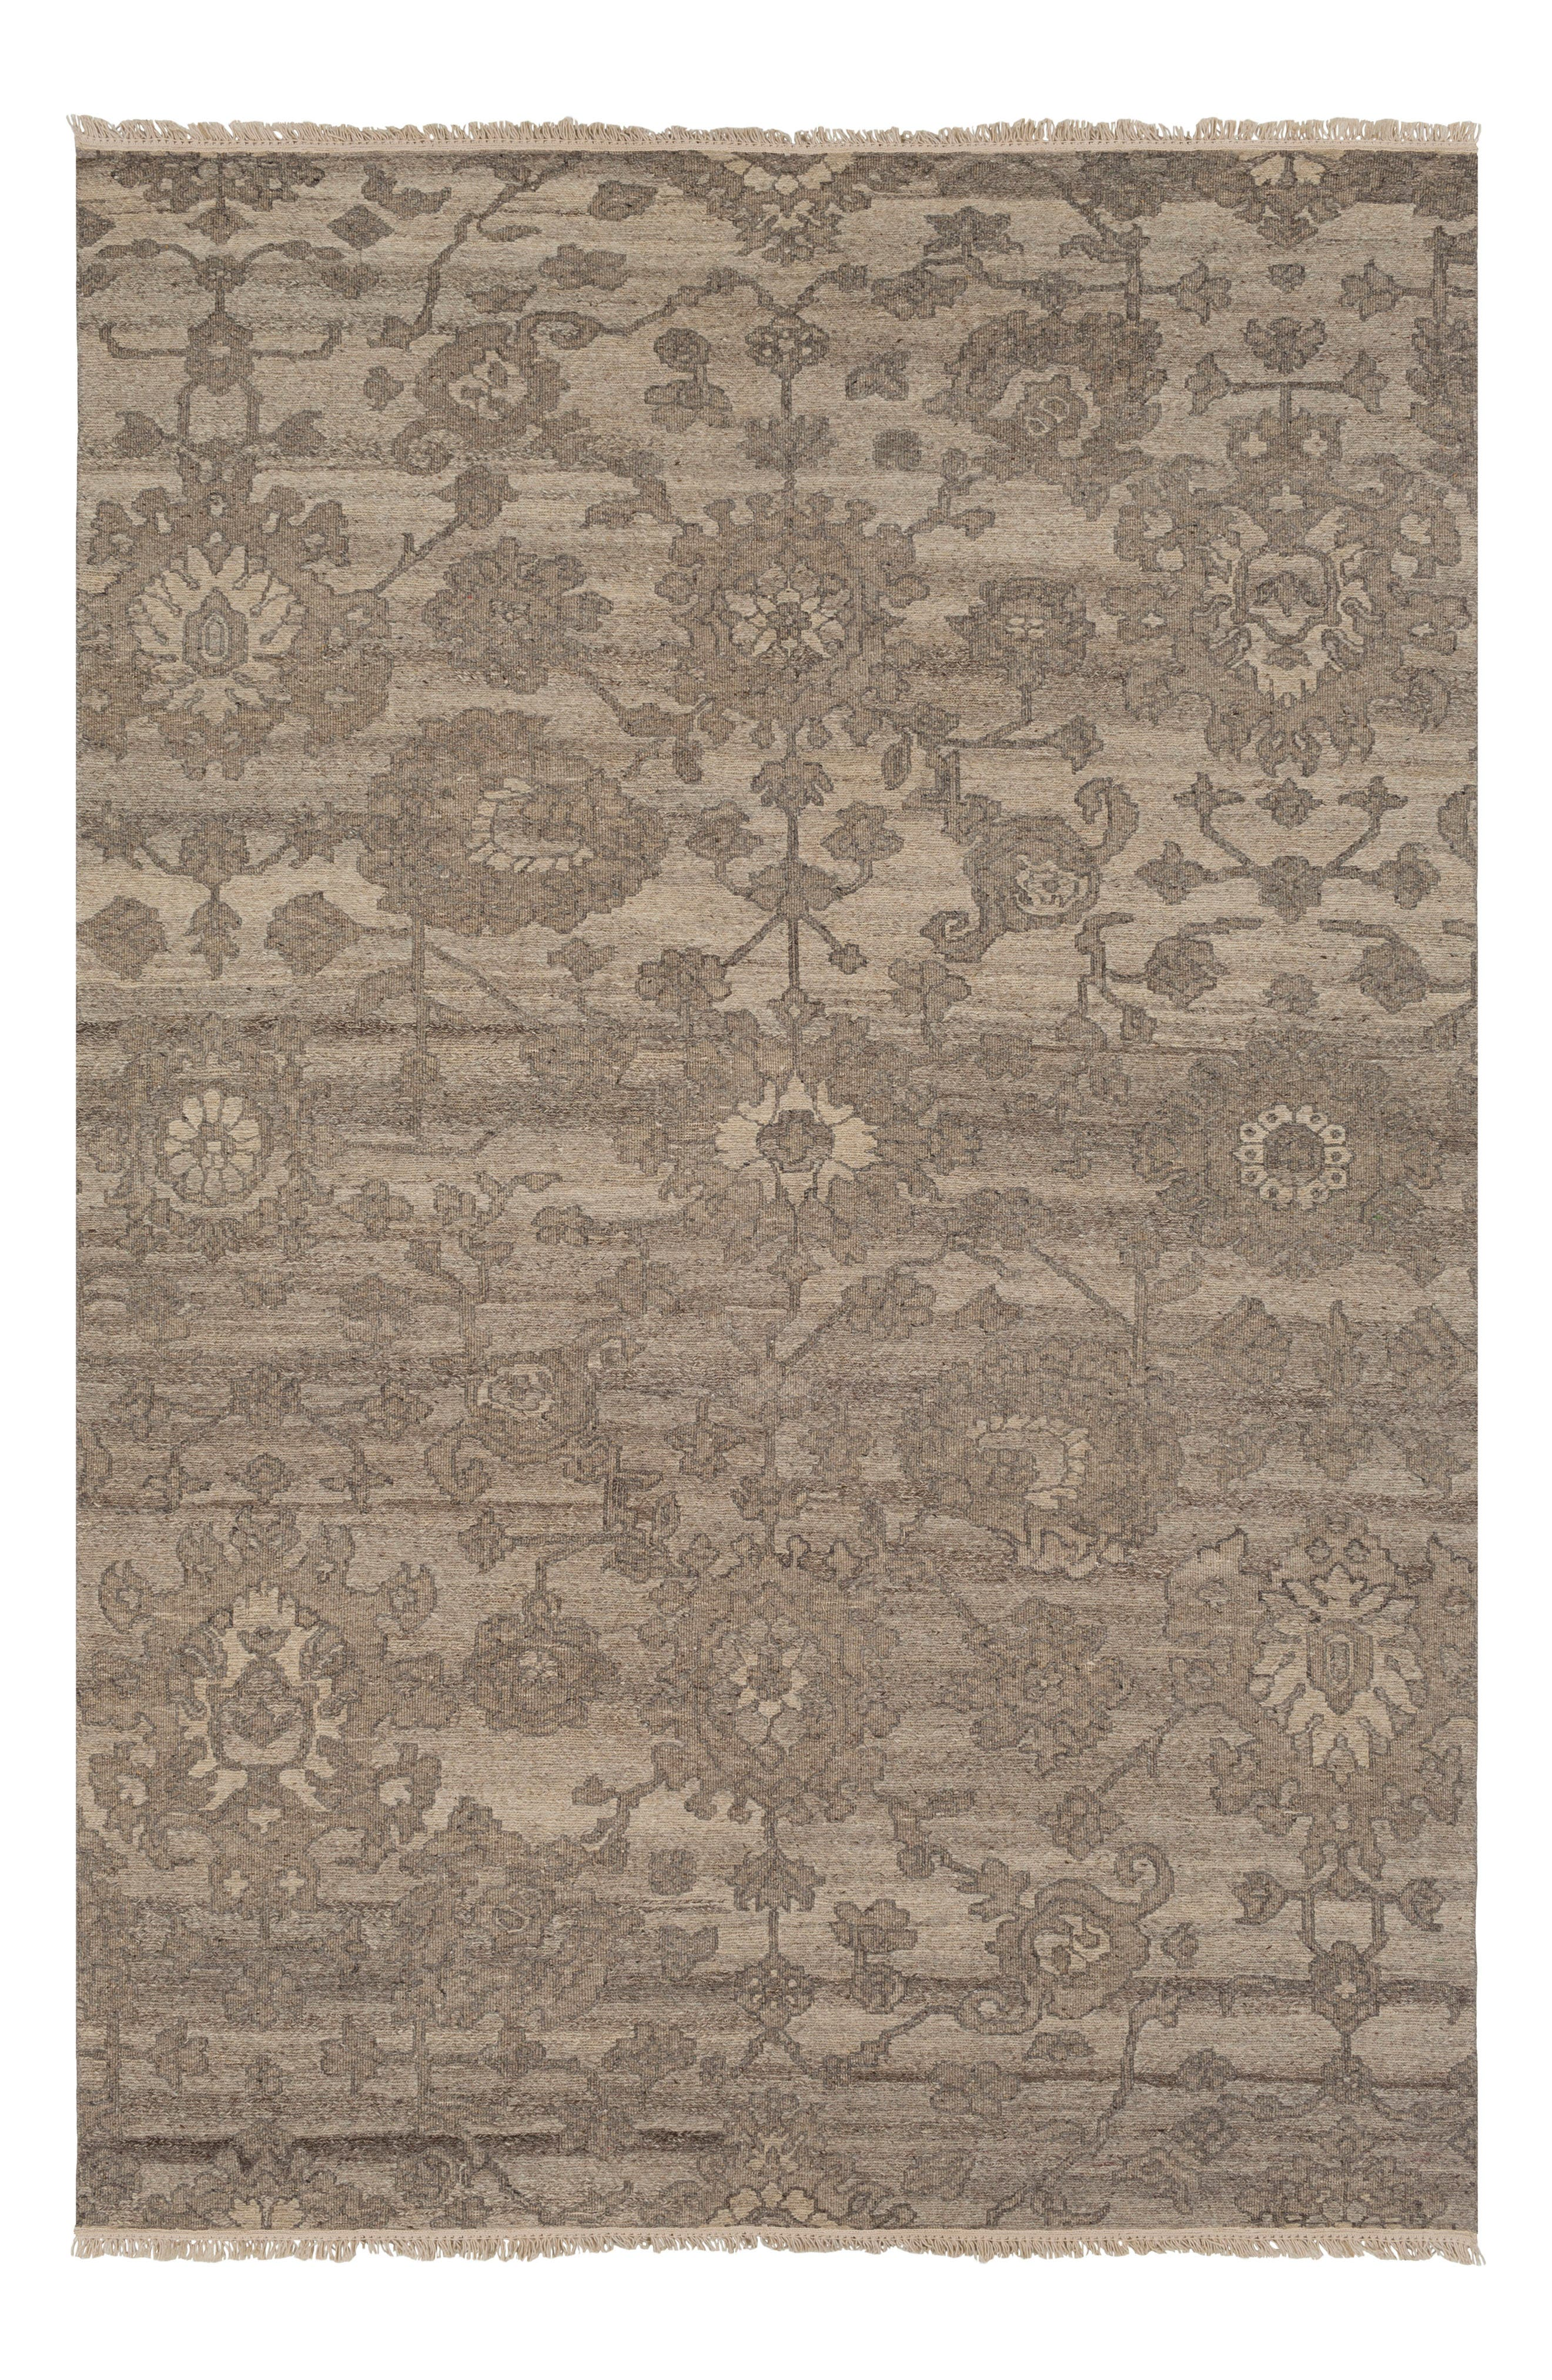 Ethereal Area Rug,                             Main thumbnail 1, color,                             250